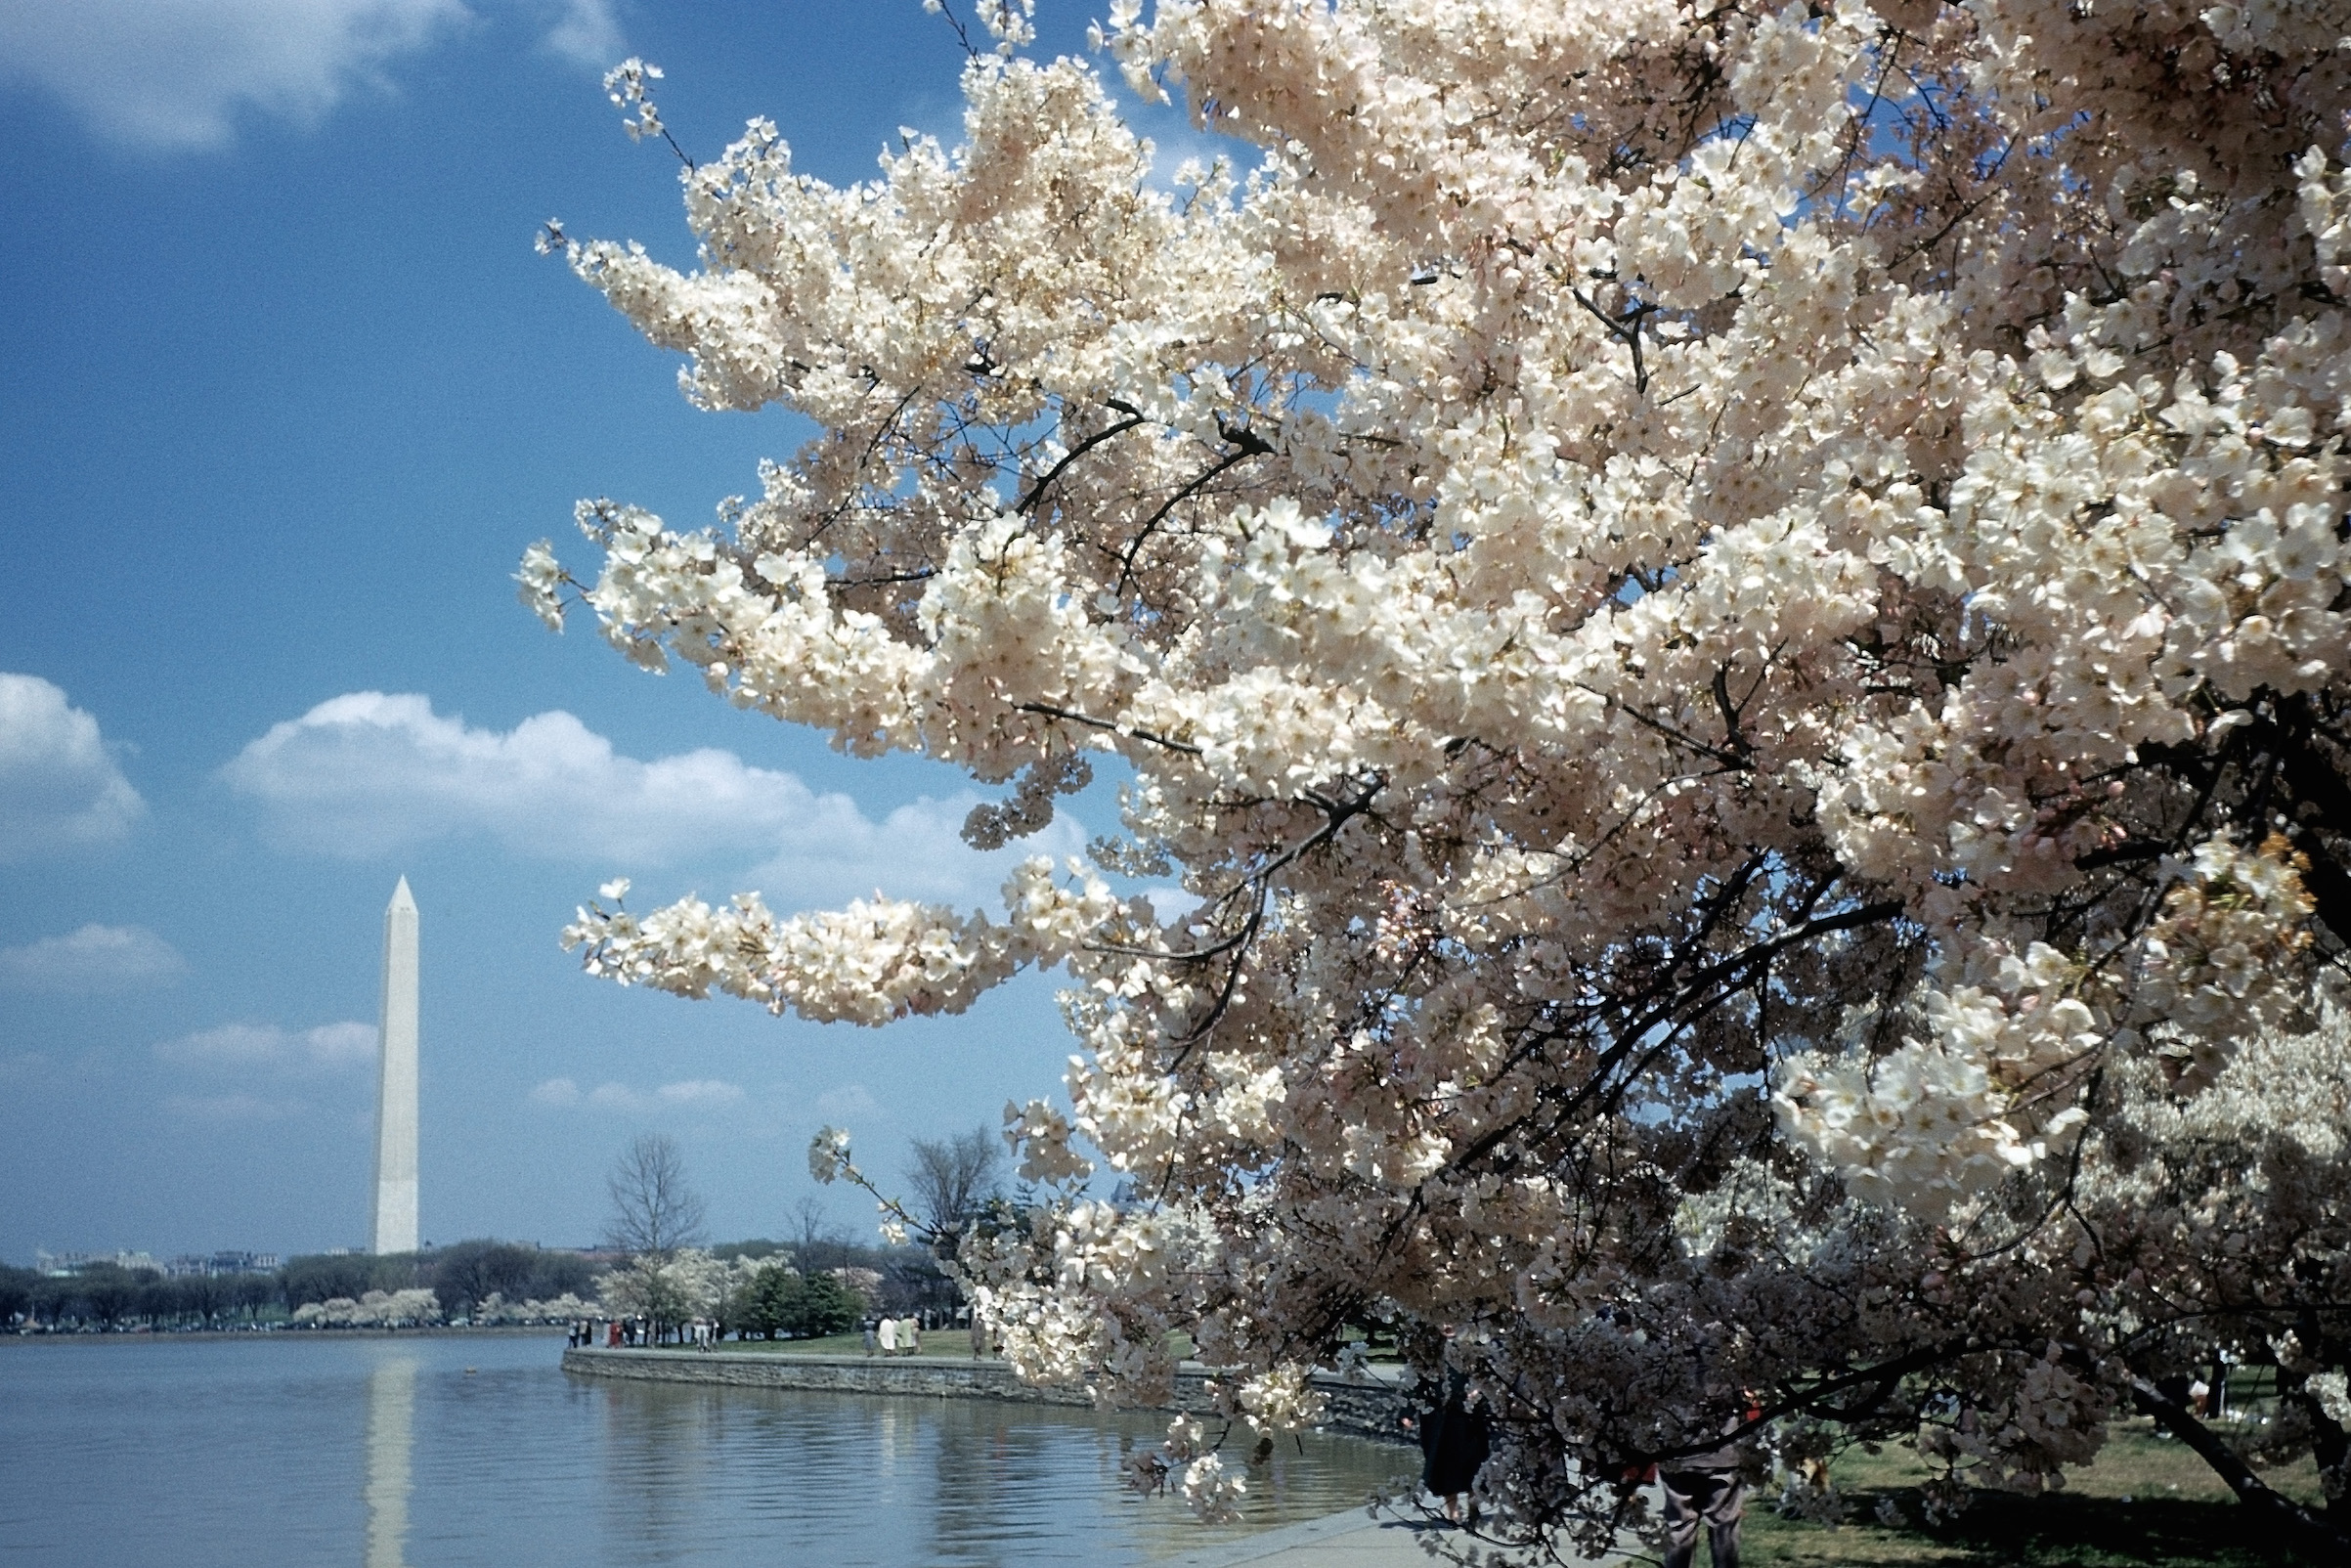 A view of the cherry blossoms and the Washington Monument and the Tidal Basin in Washington, D.C., circa 1948